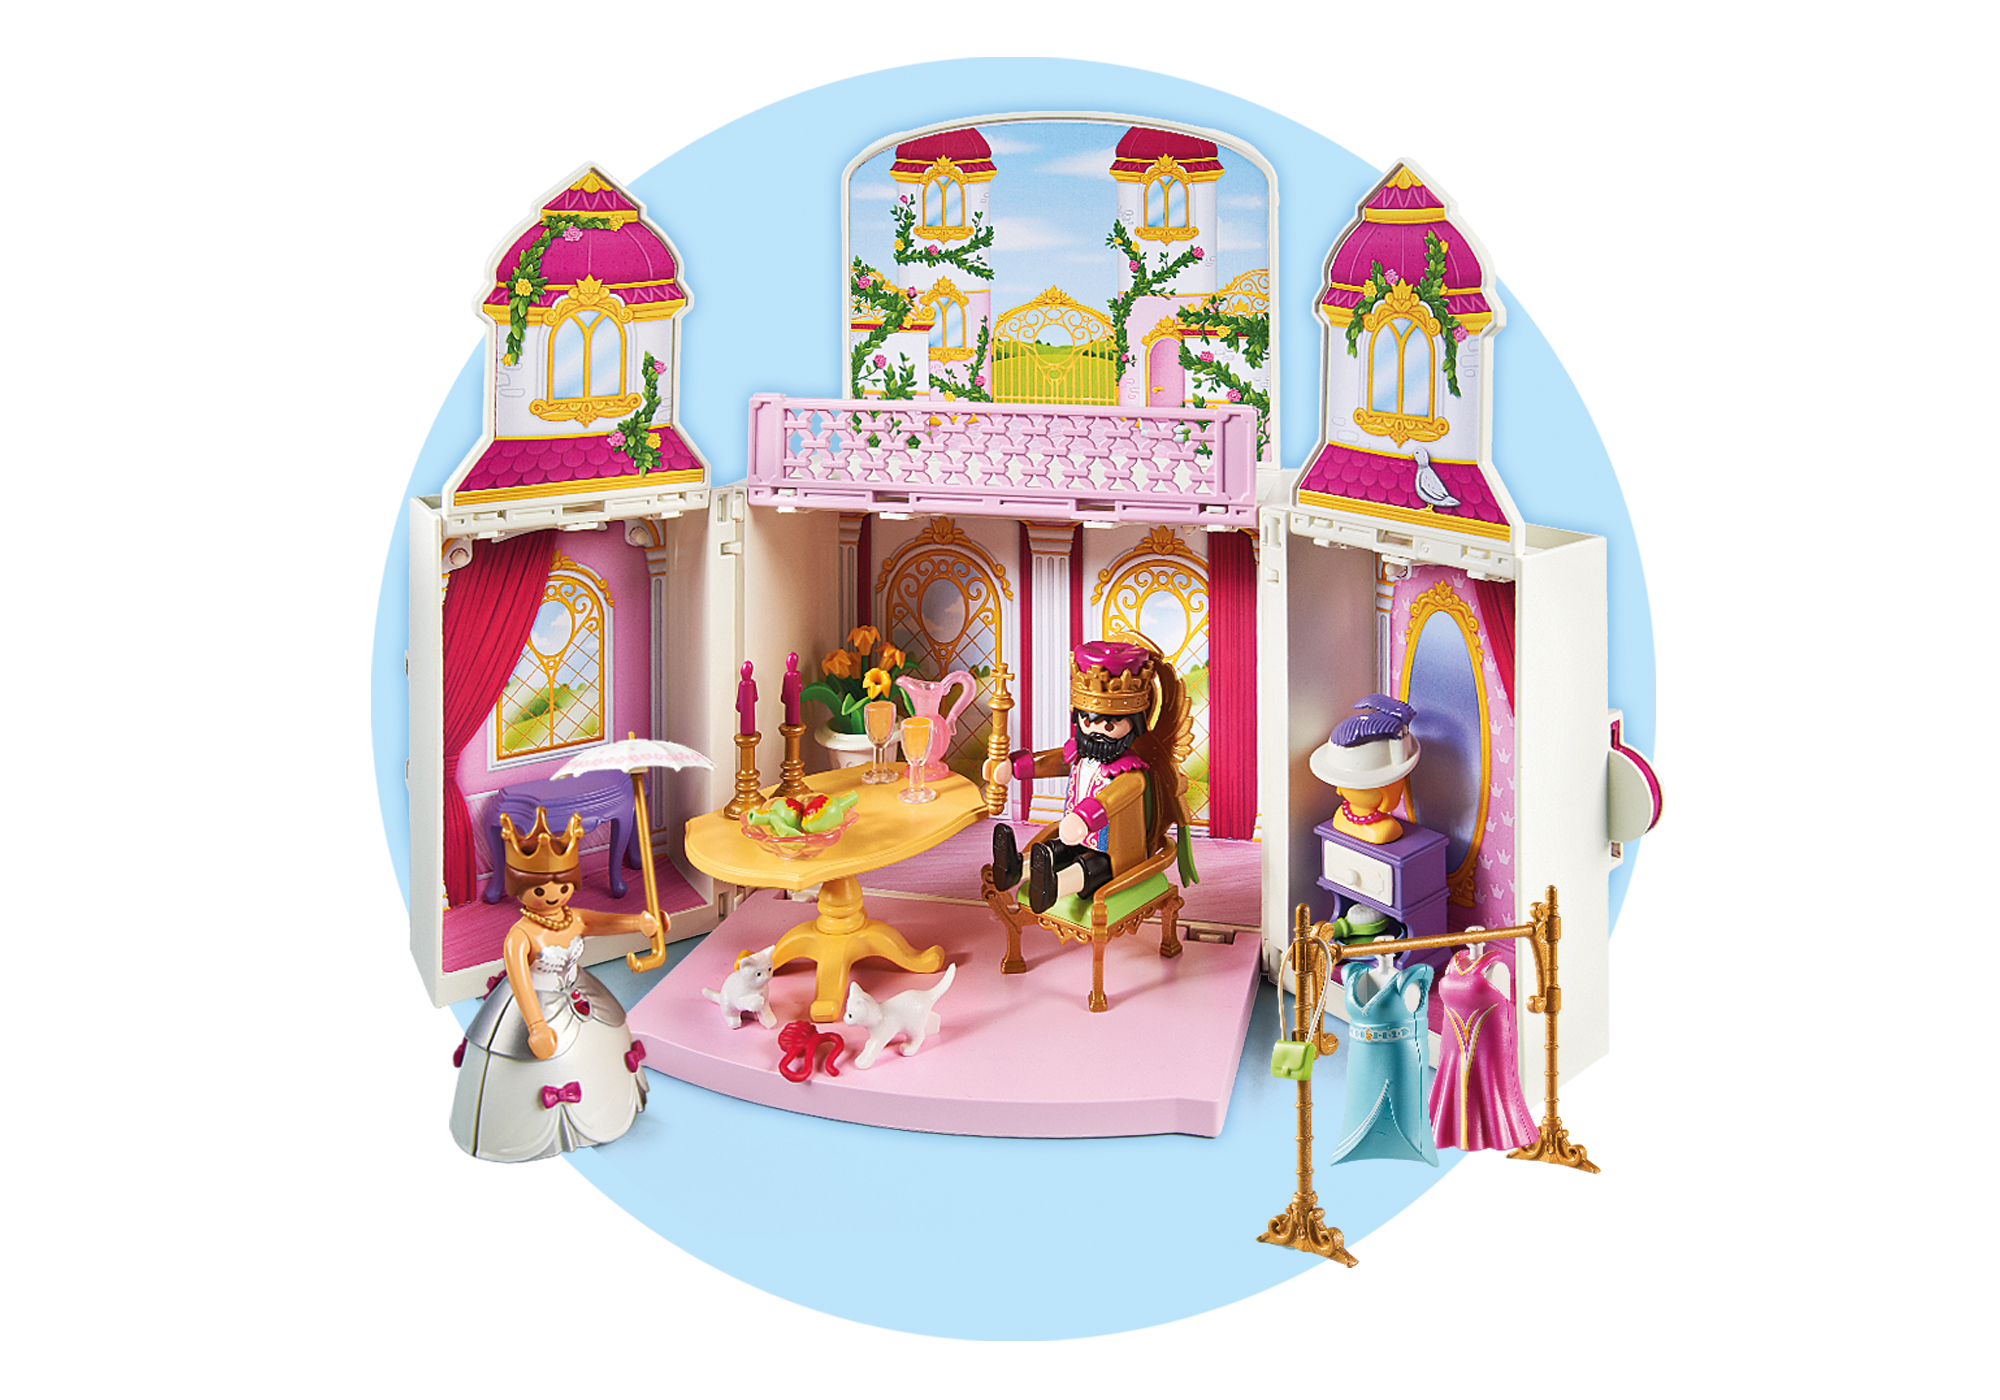 http://media.playmobil.com/i/playmobil/4898_product_extra6/My Secret Royal Palace Play Box